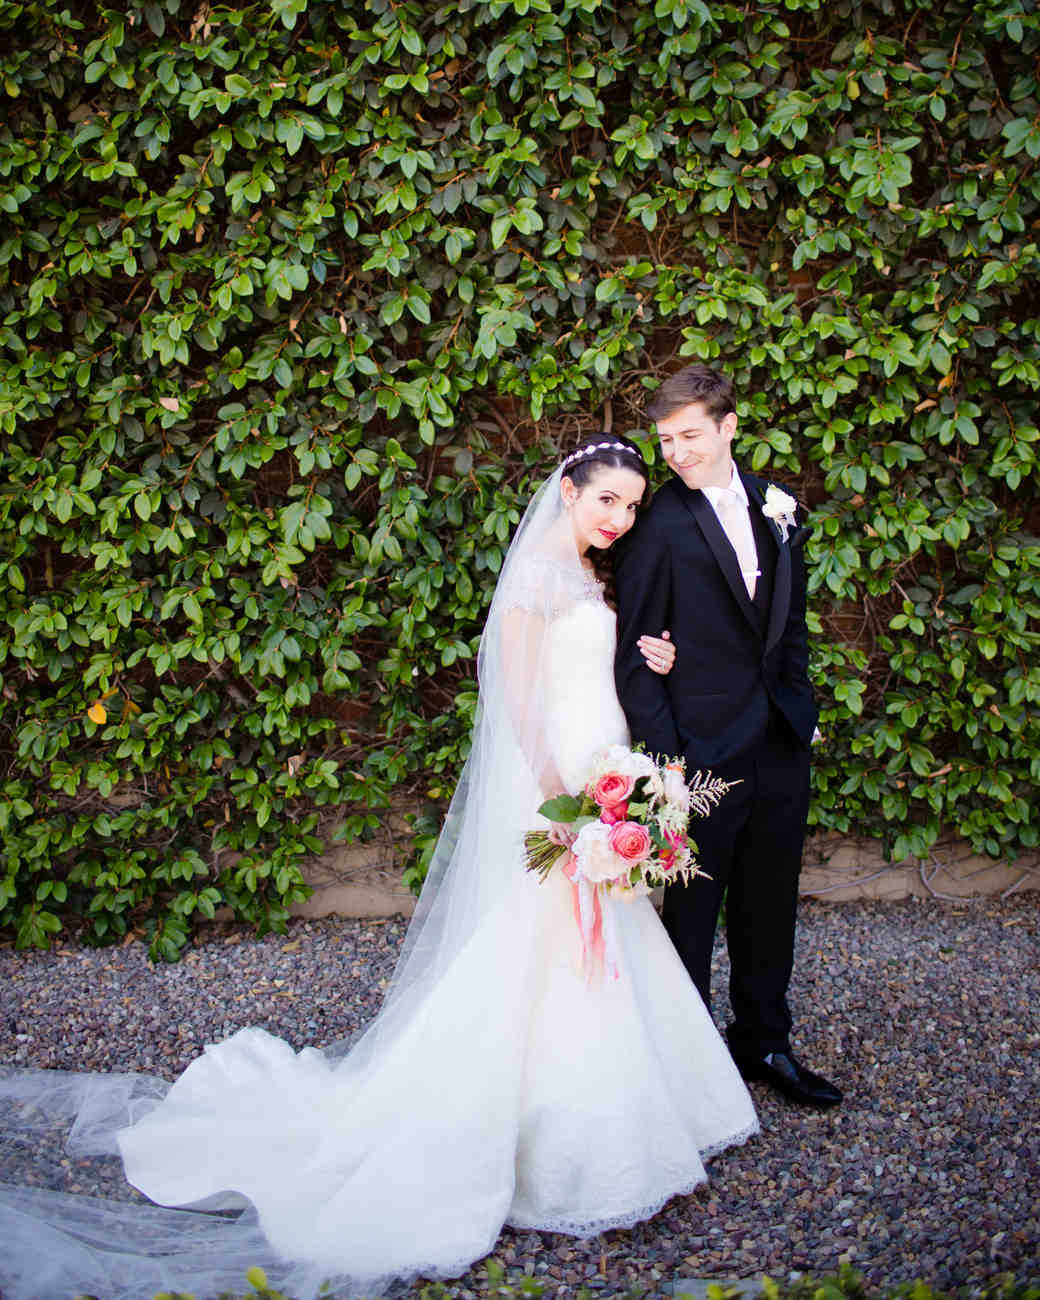 richelle-tom-wedding-couple-396-s112855-0416.jpg